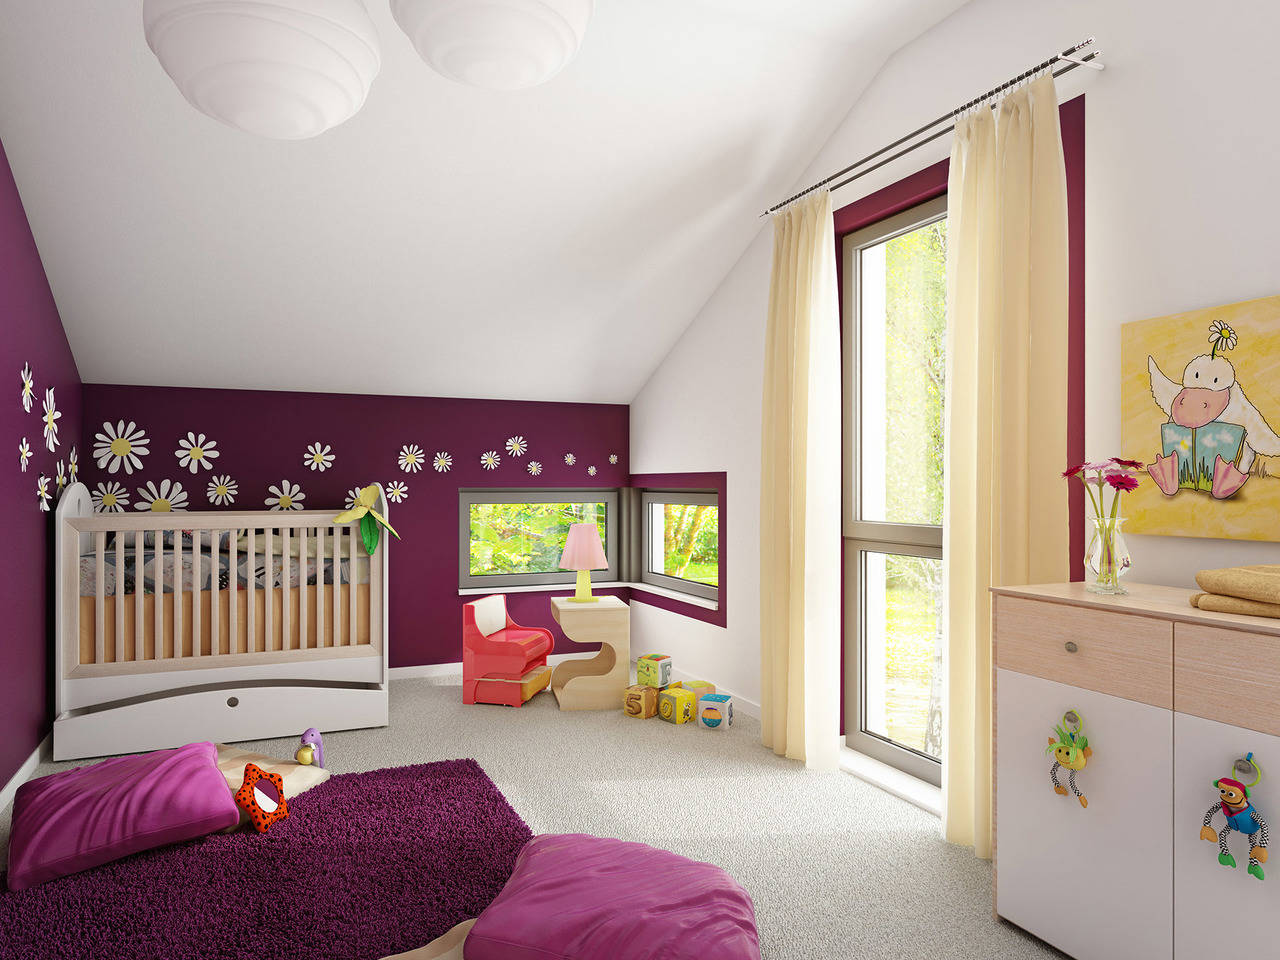 Haus SOLUTION 204 V7 Kinderzimmer von Living Haus